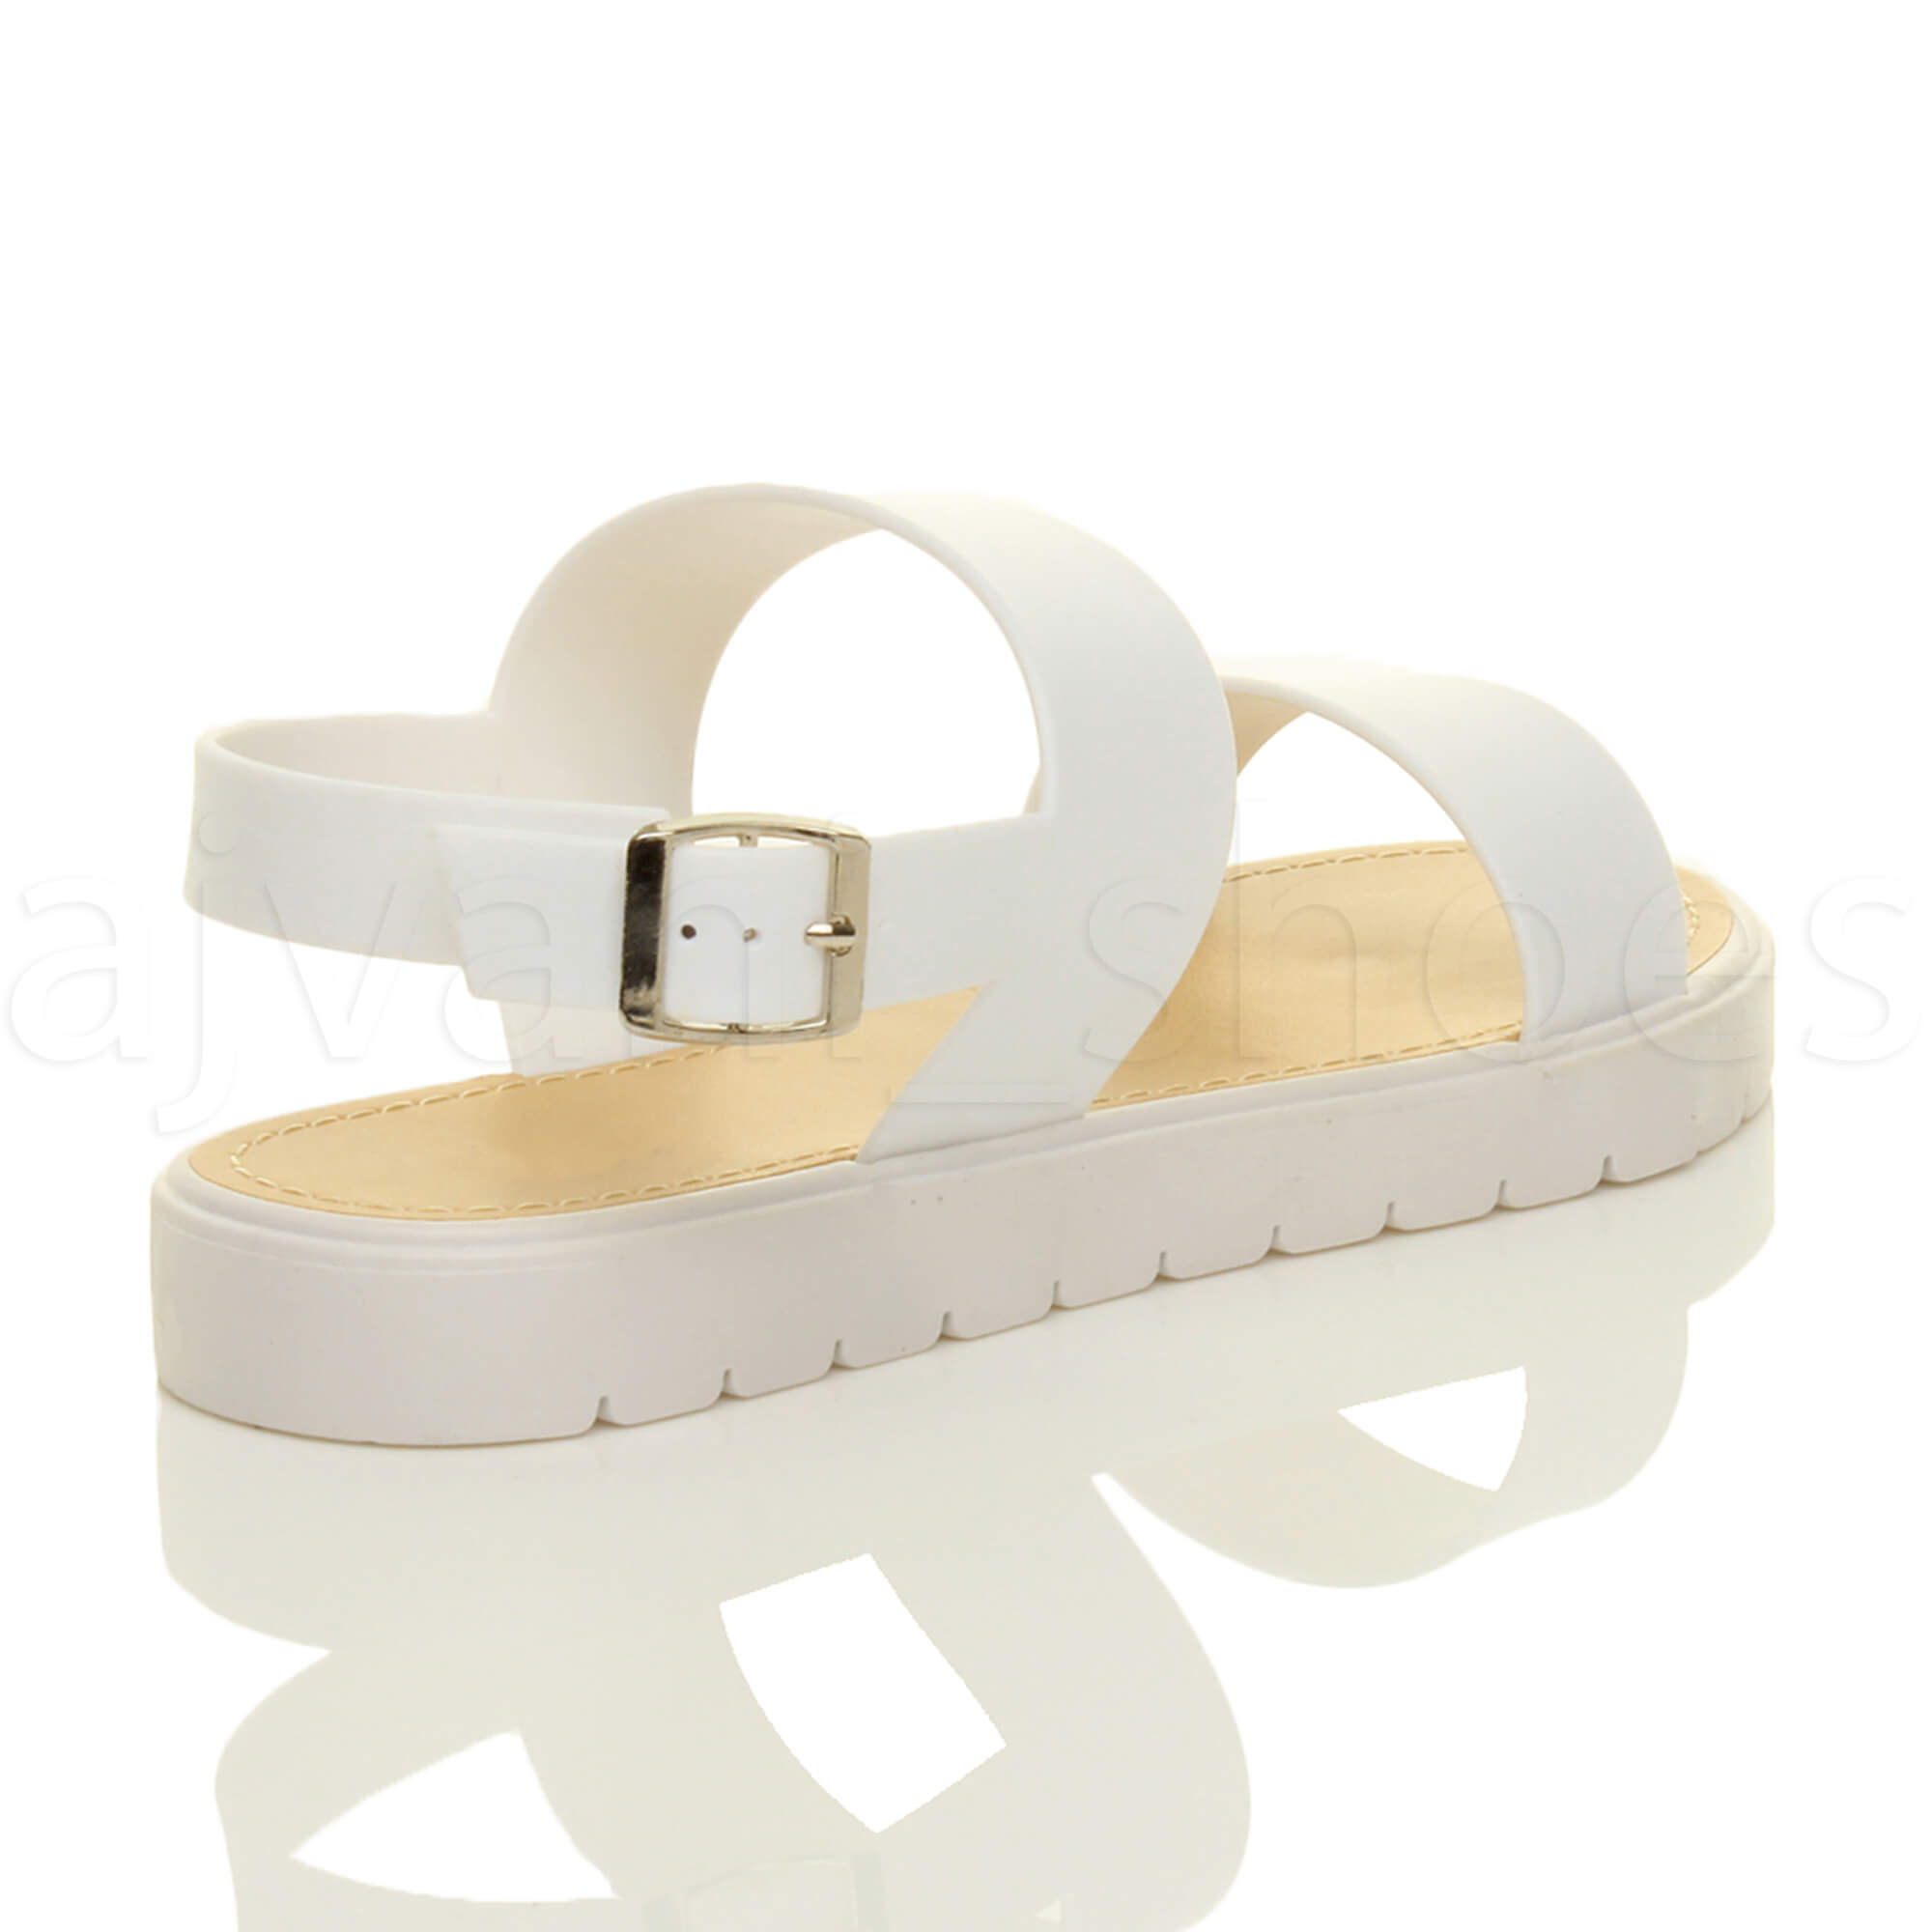 WOMENS-LADIES-FLAT-STRAPPY-BUCKLE-SLINGBACK-CLEATED-RUBBER-SUMMER-SANDALS-SIZE thumbnail 12